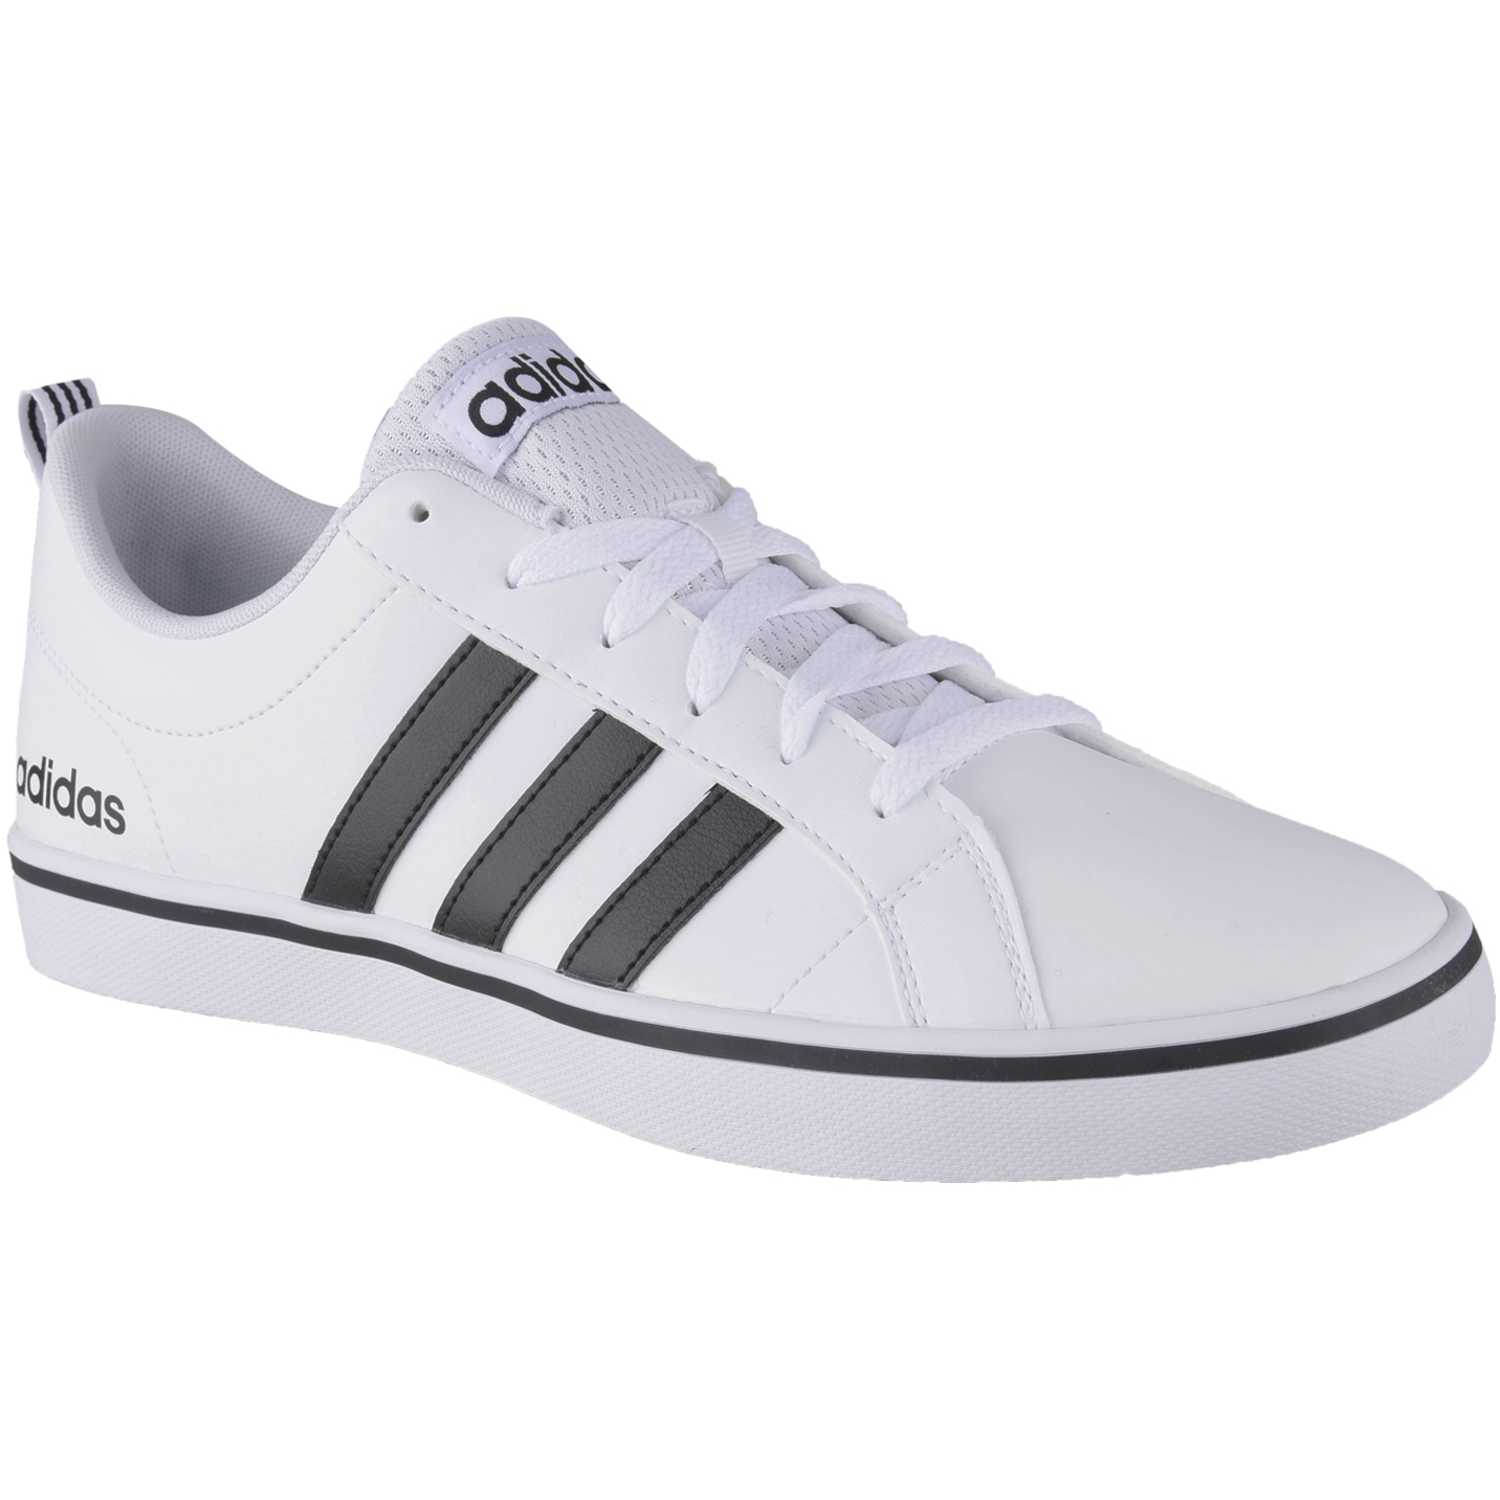 adidas NEO vs pace Blanco / negro Walking | platanitos.com